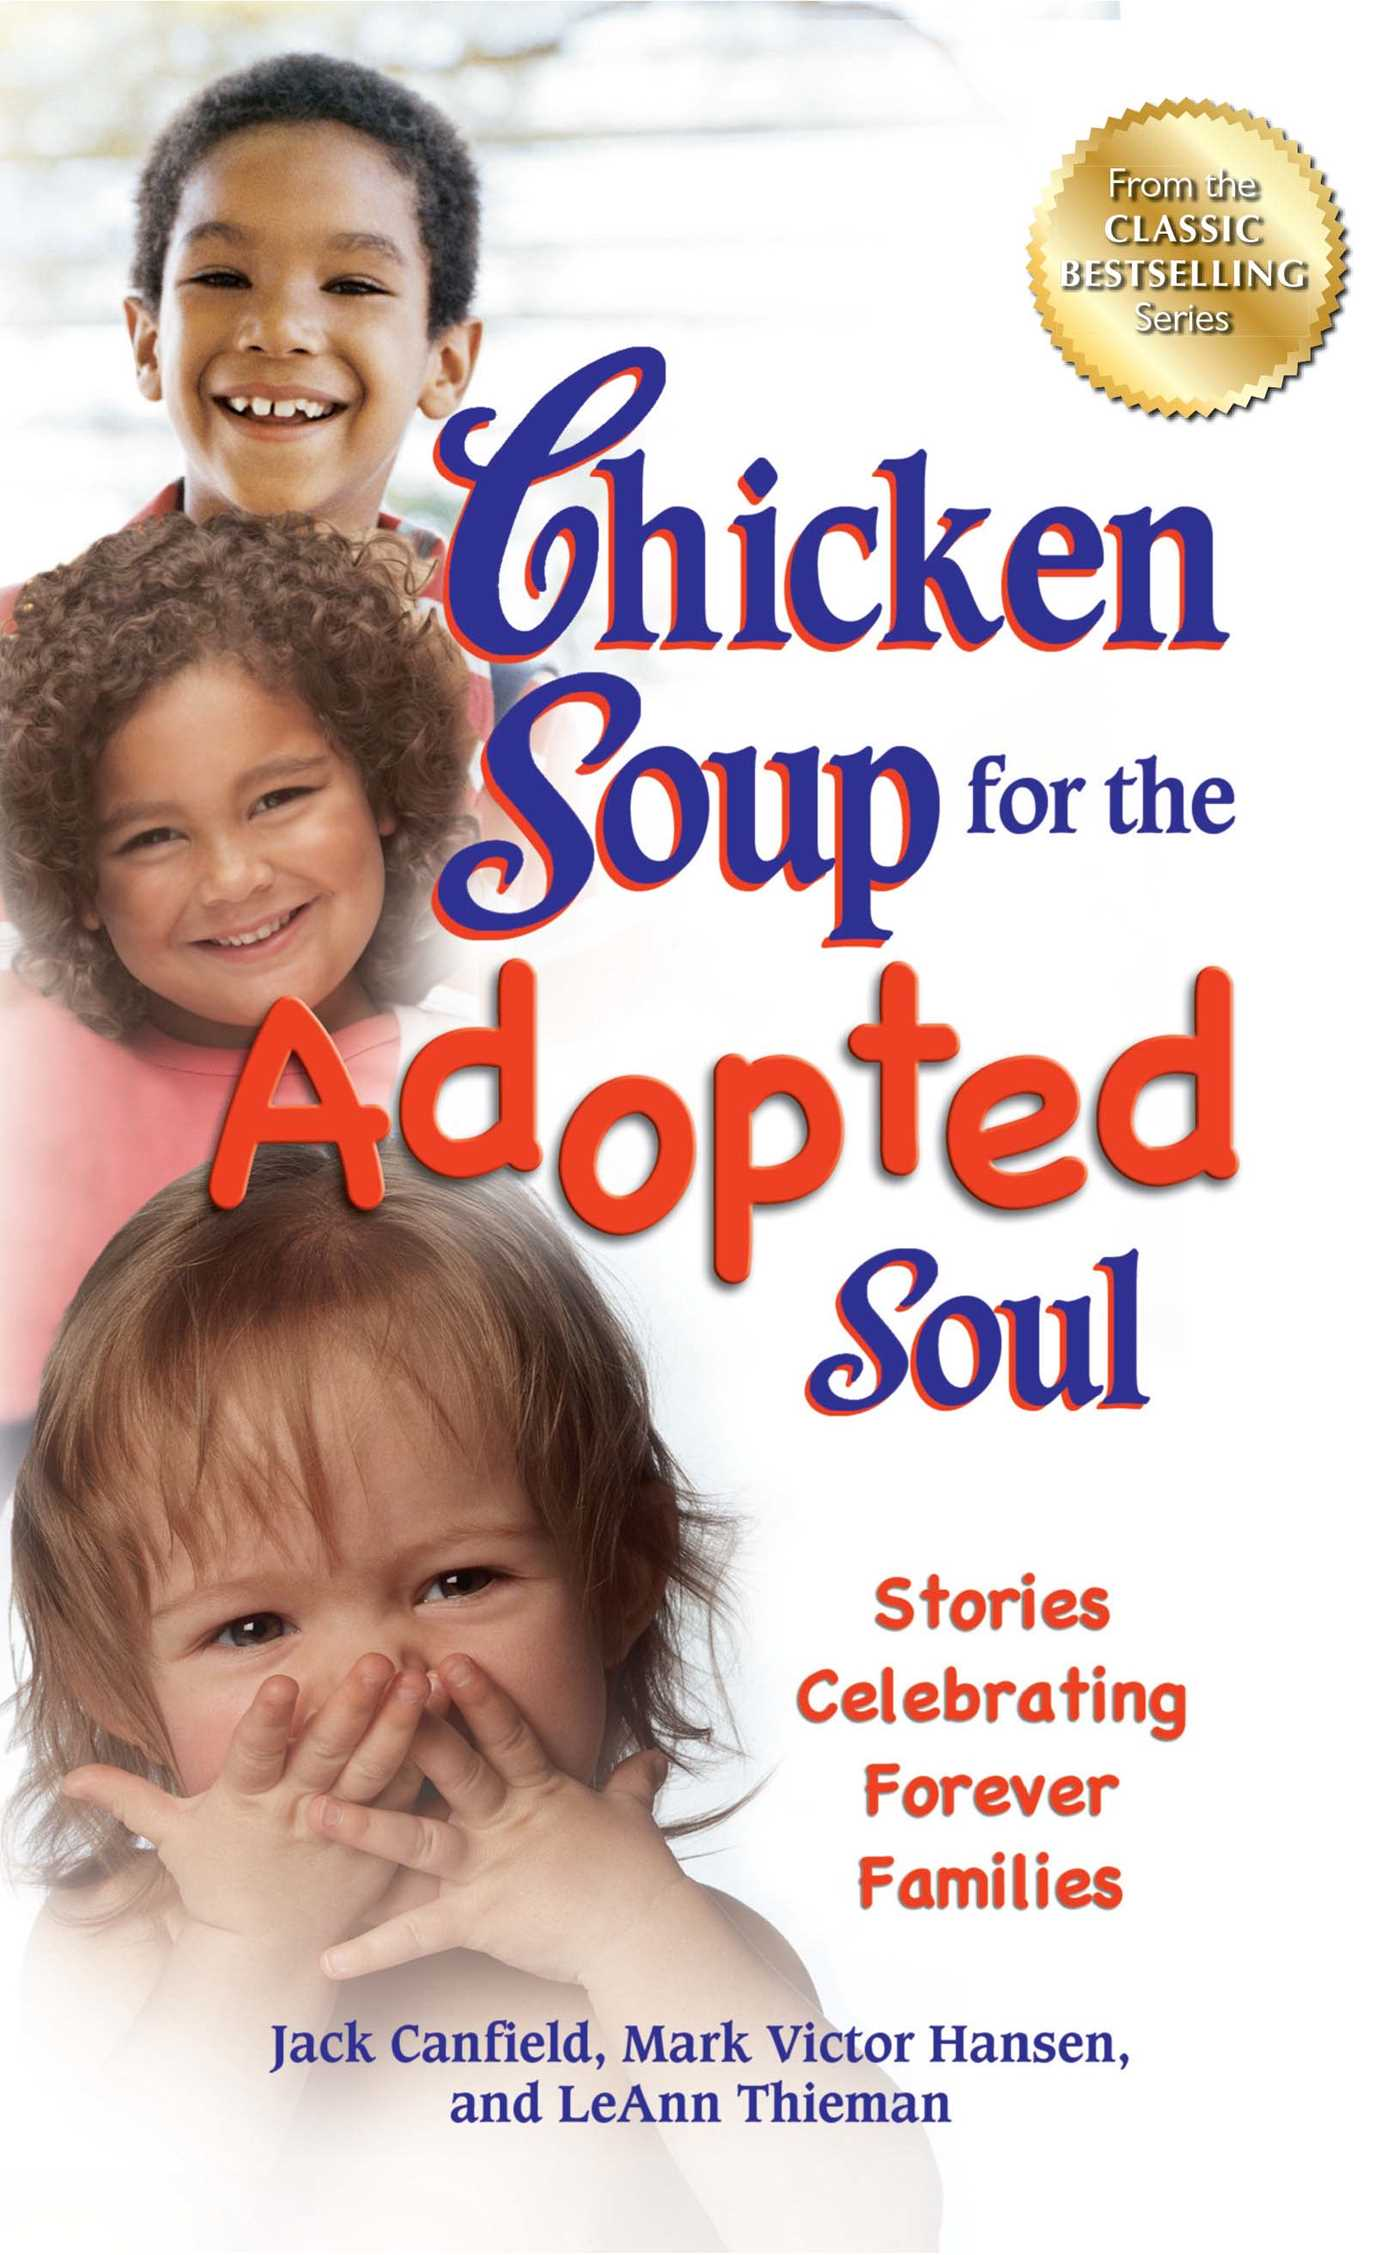 Chicken-soup-for-the-adopted-soul-9781623611163_hr